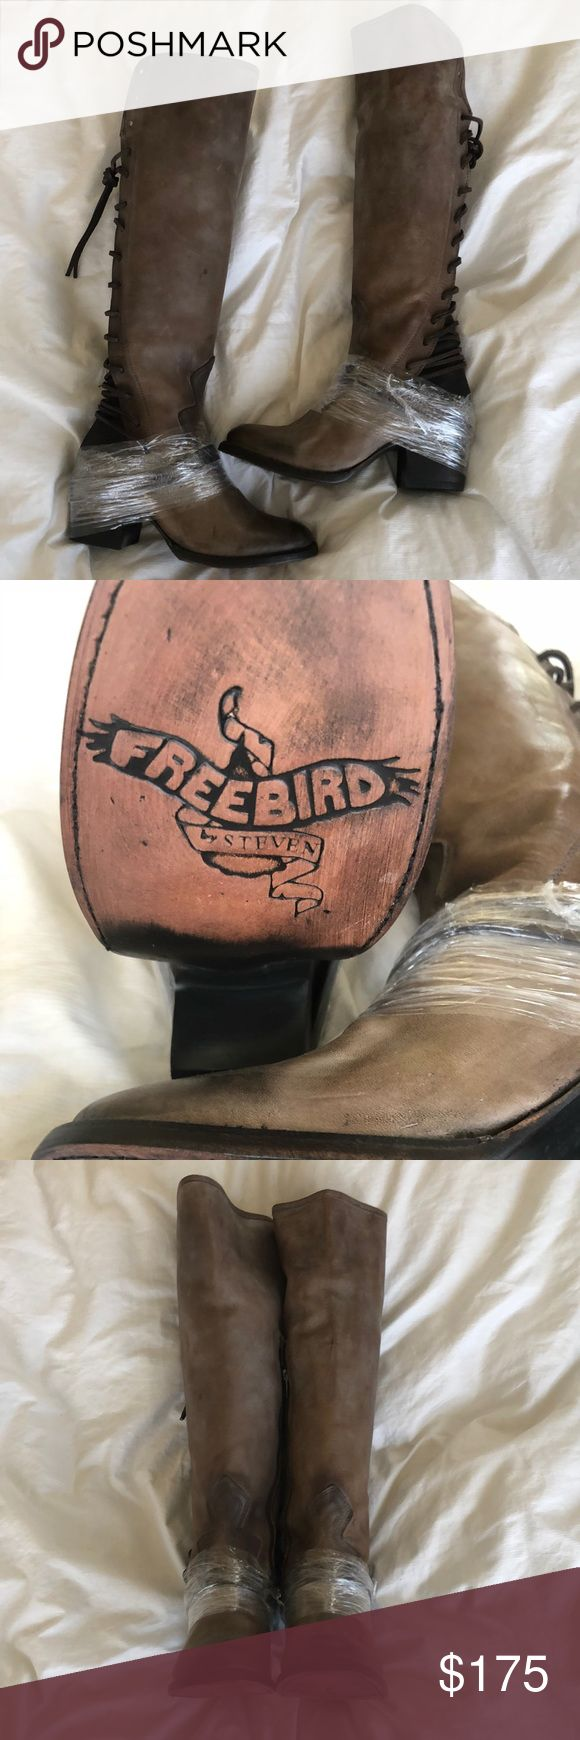 Freebird Coal boots, NWOT Freebird by Steven Tall Shaft boots with adjustable corset back. Grey. Size 7. Brand new, never worn. Full leather with suede back. Freebird by Steven Shoes Heeled Boots